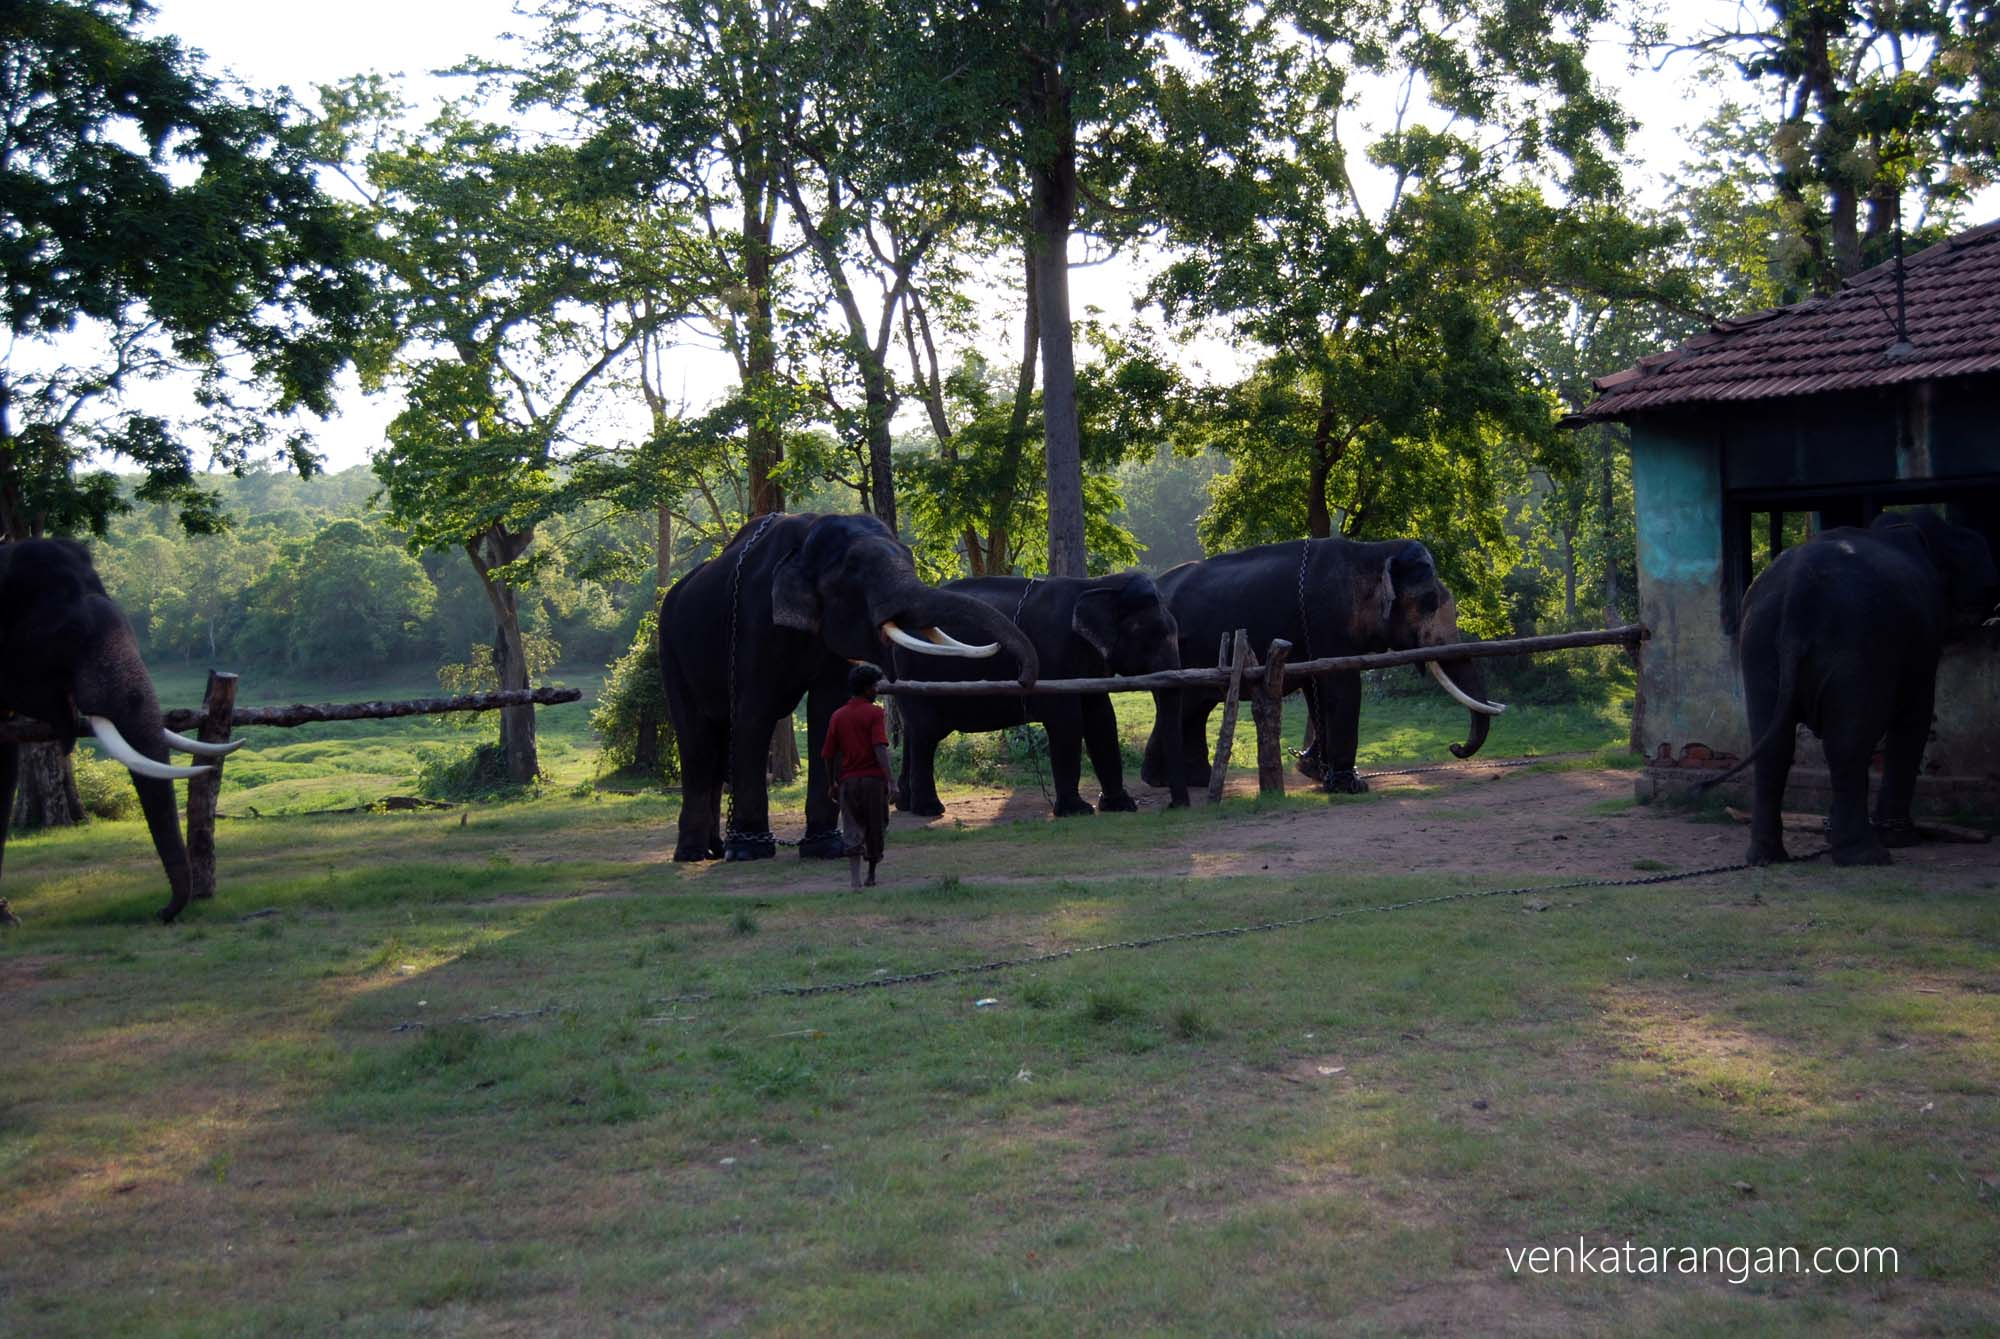 Elephants maintained by forest department